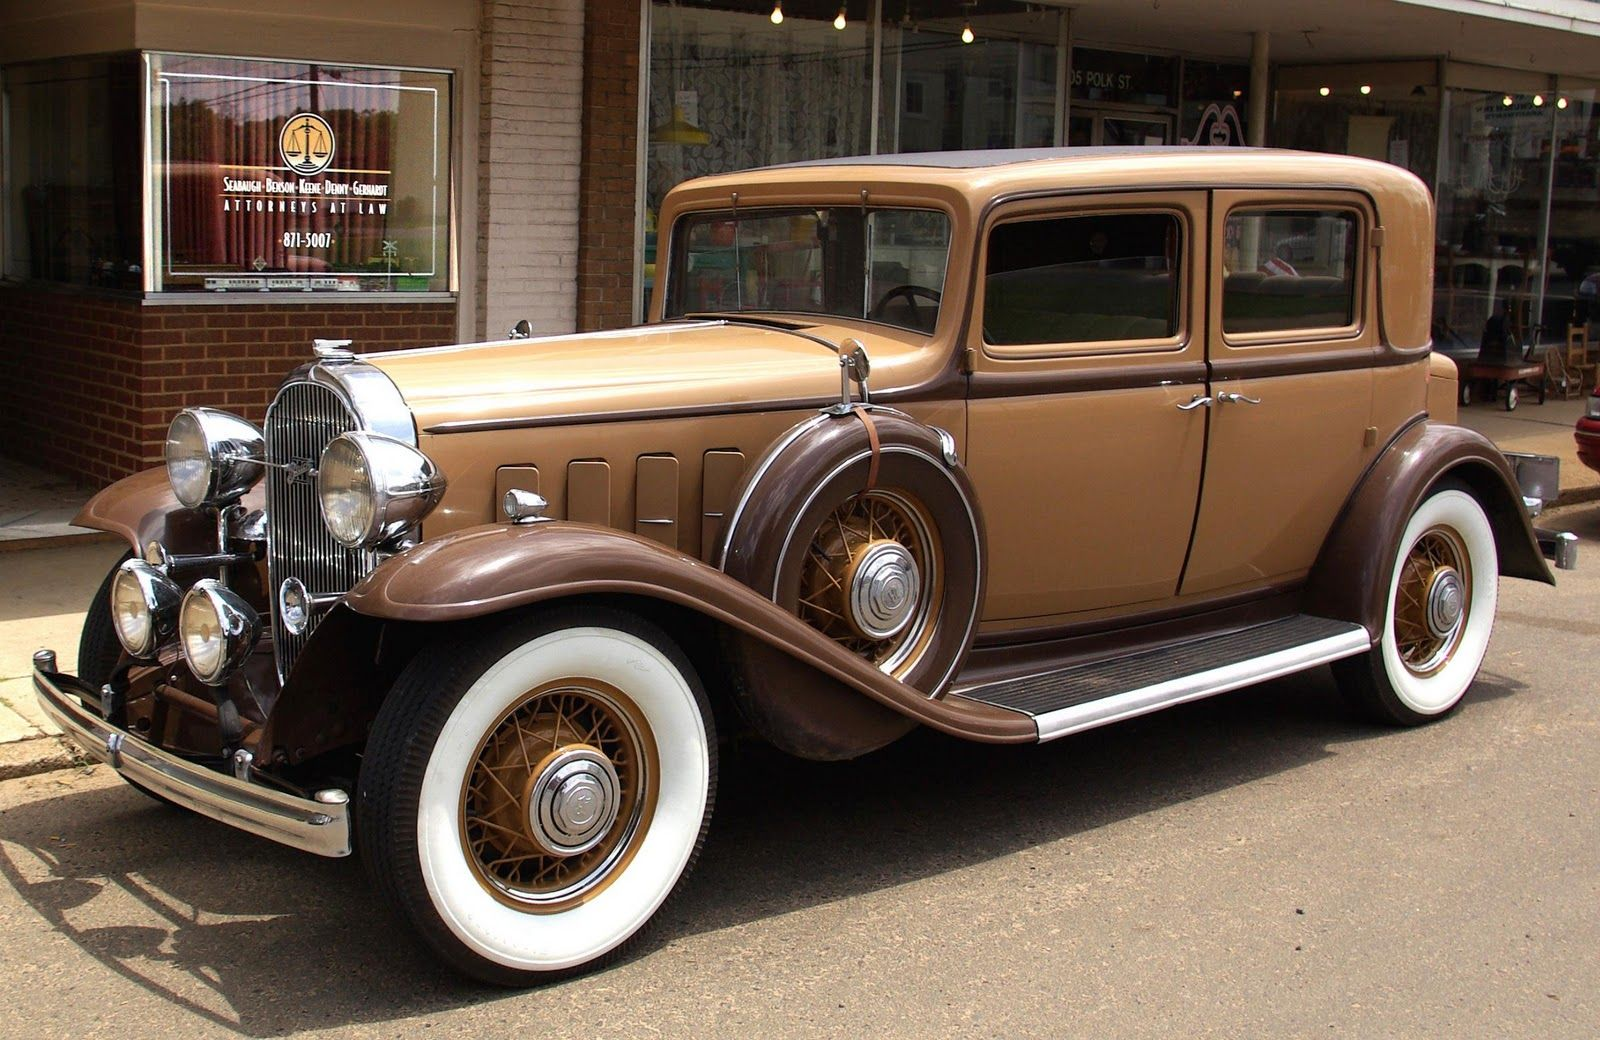 1932 Buick Old Car Classic | cars | Pinterest | Cars and Vehicle